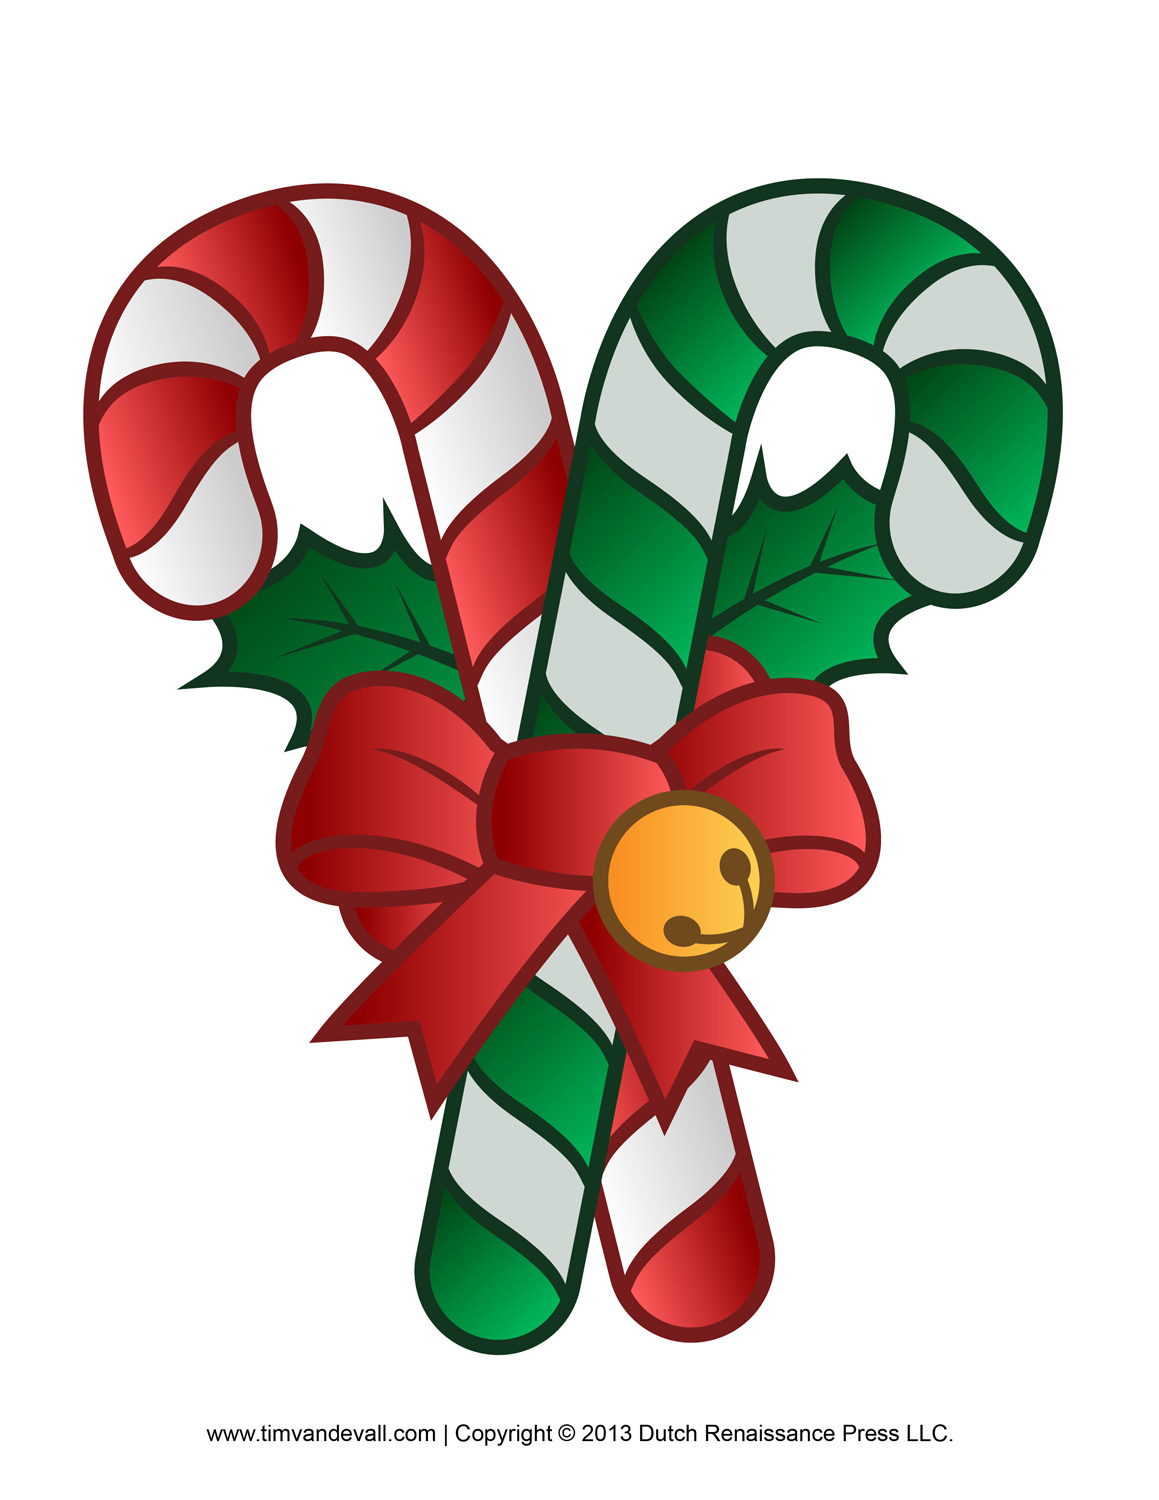 Free Candy Cane Template Printables Crafts & Decorations Clipart - Free Candy Cane Template Printable